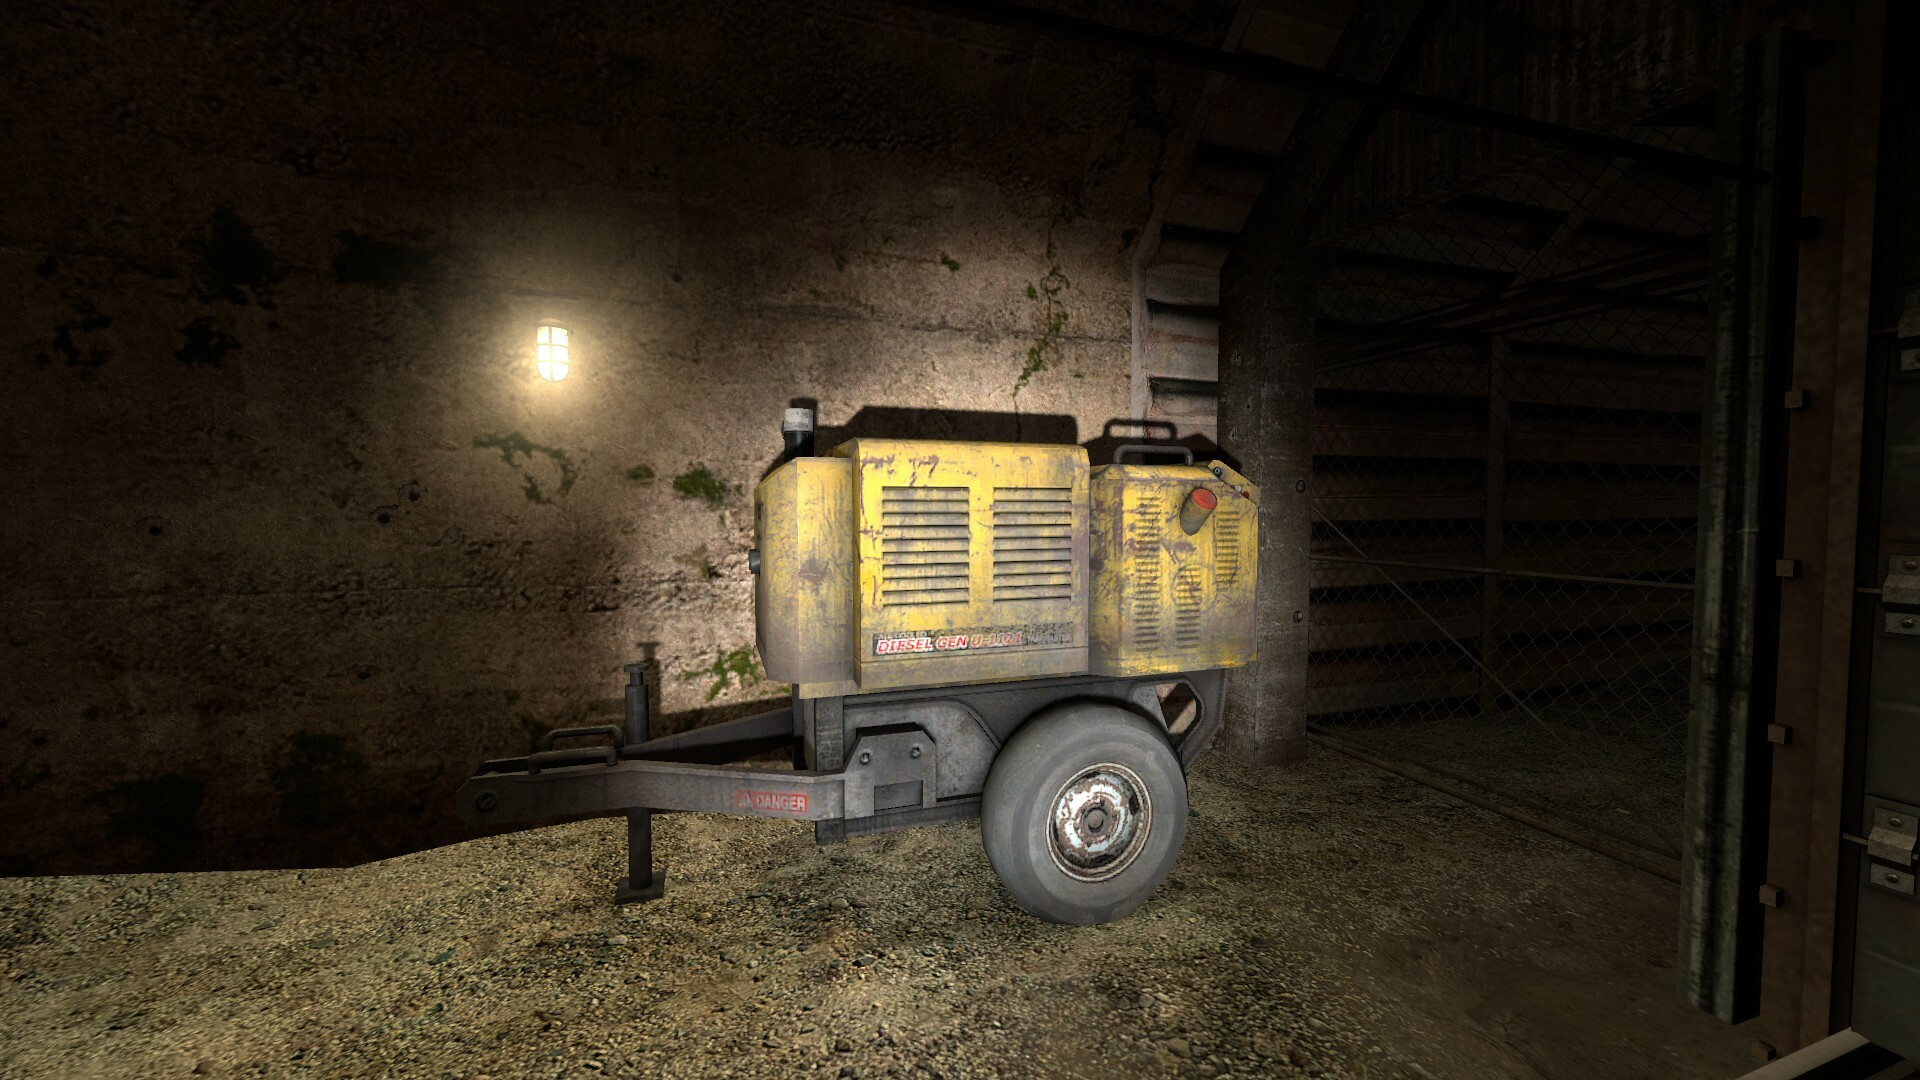 Generator from Half-Life 2 Episode 2 which inspired me